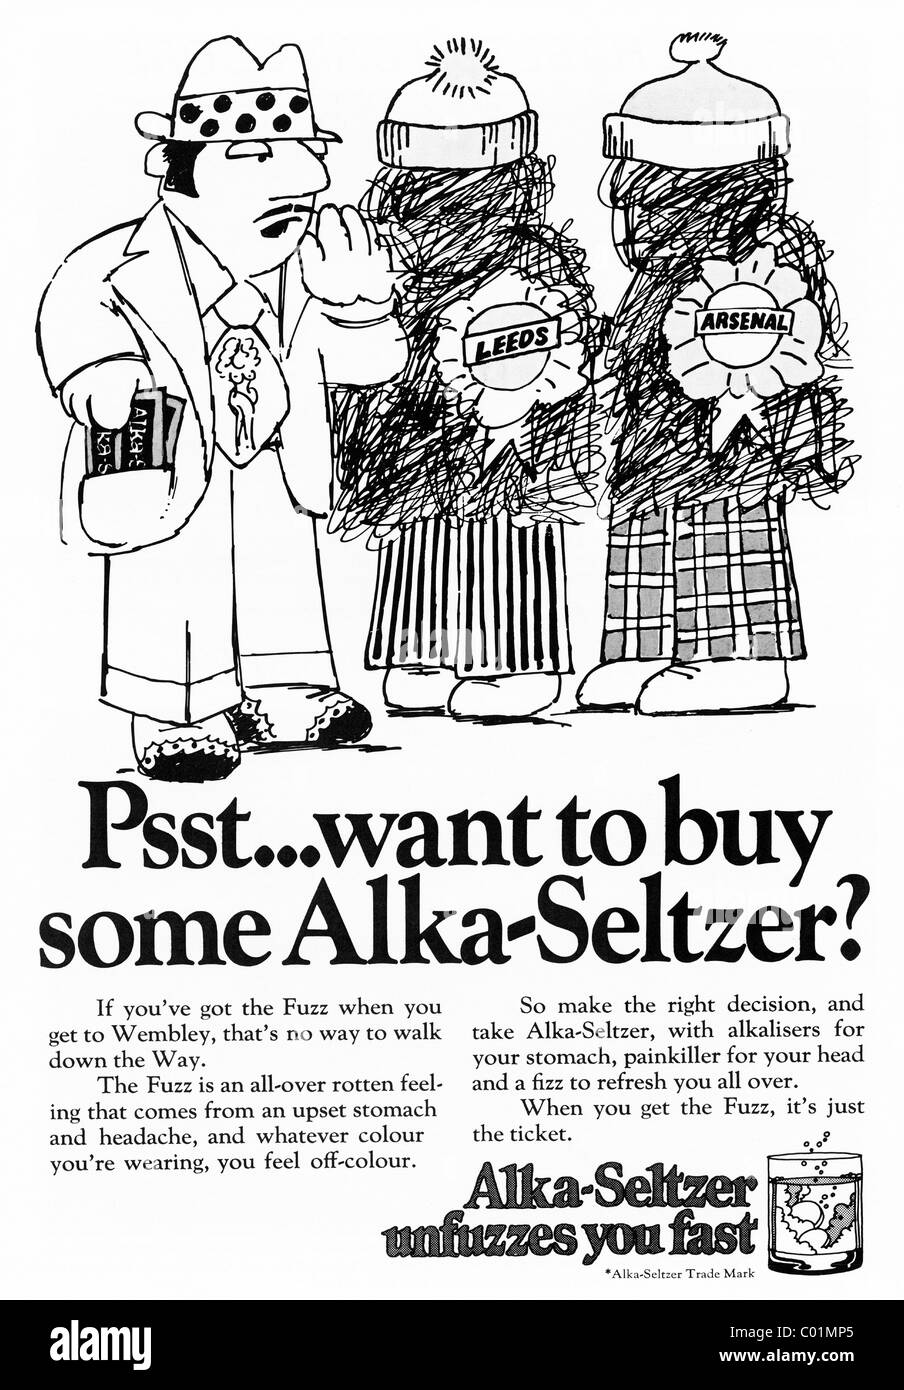 1970s advertisement in football programme for ALKA-SELTZER - Stock Image